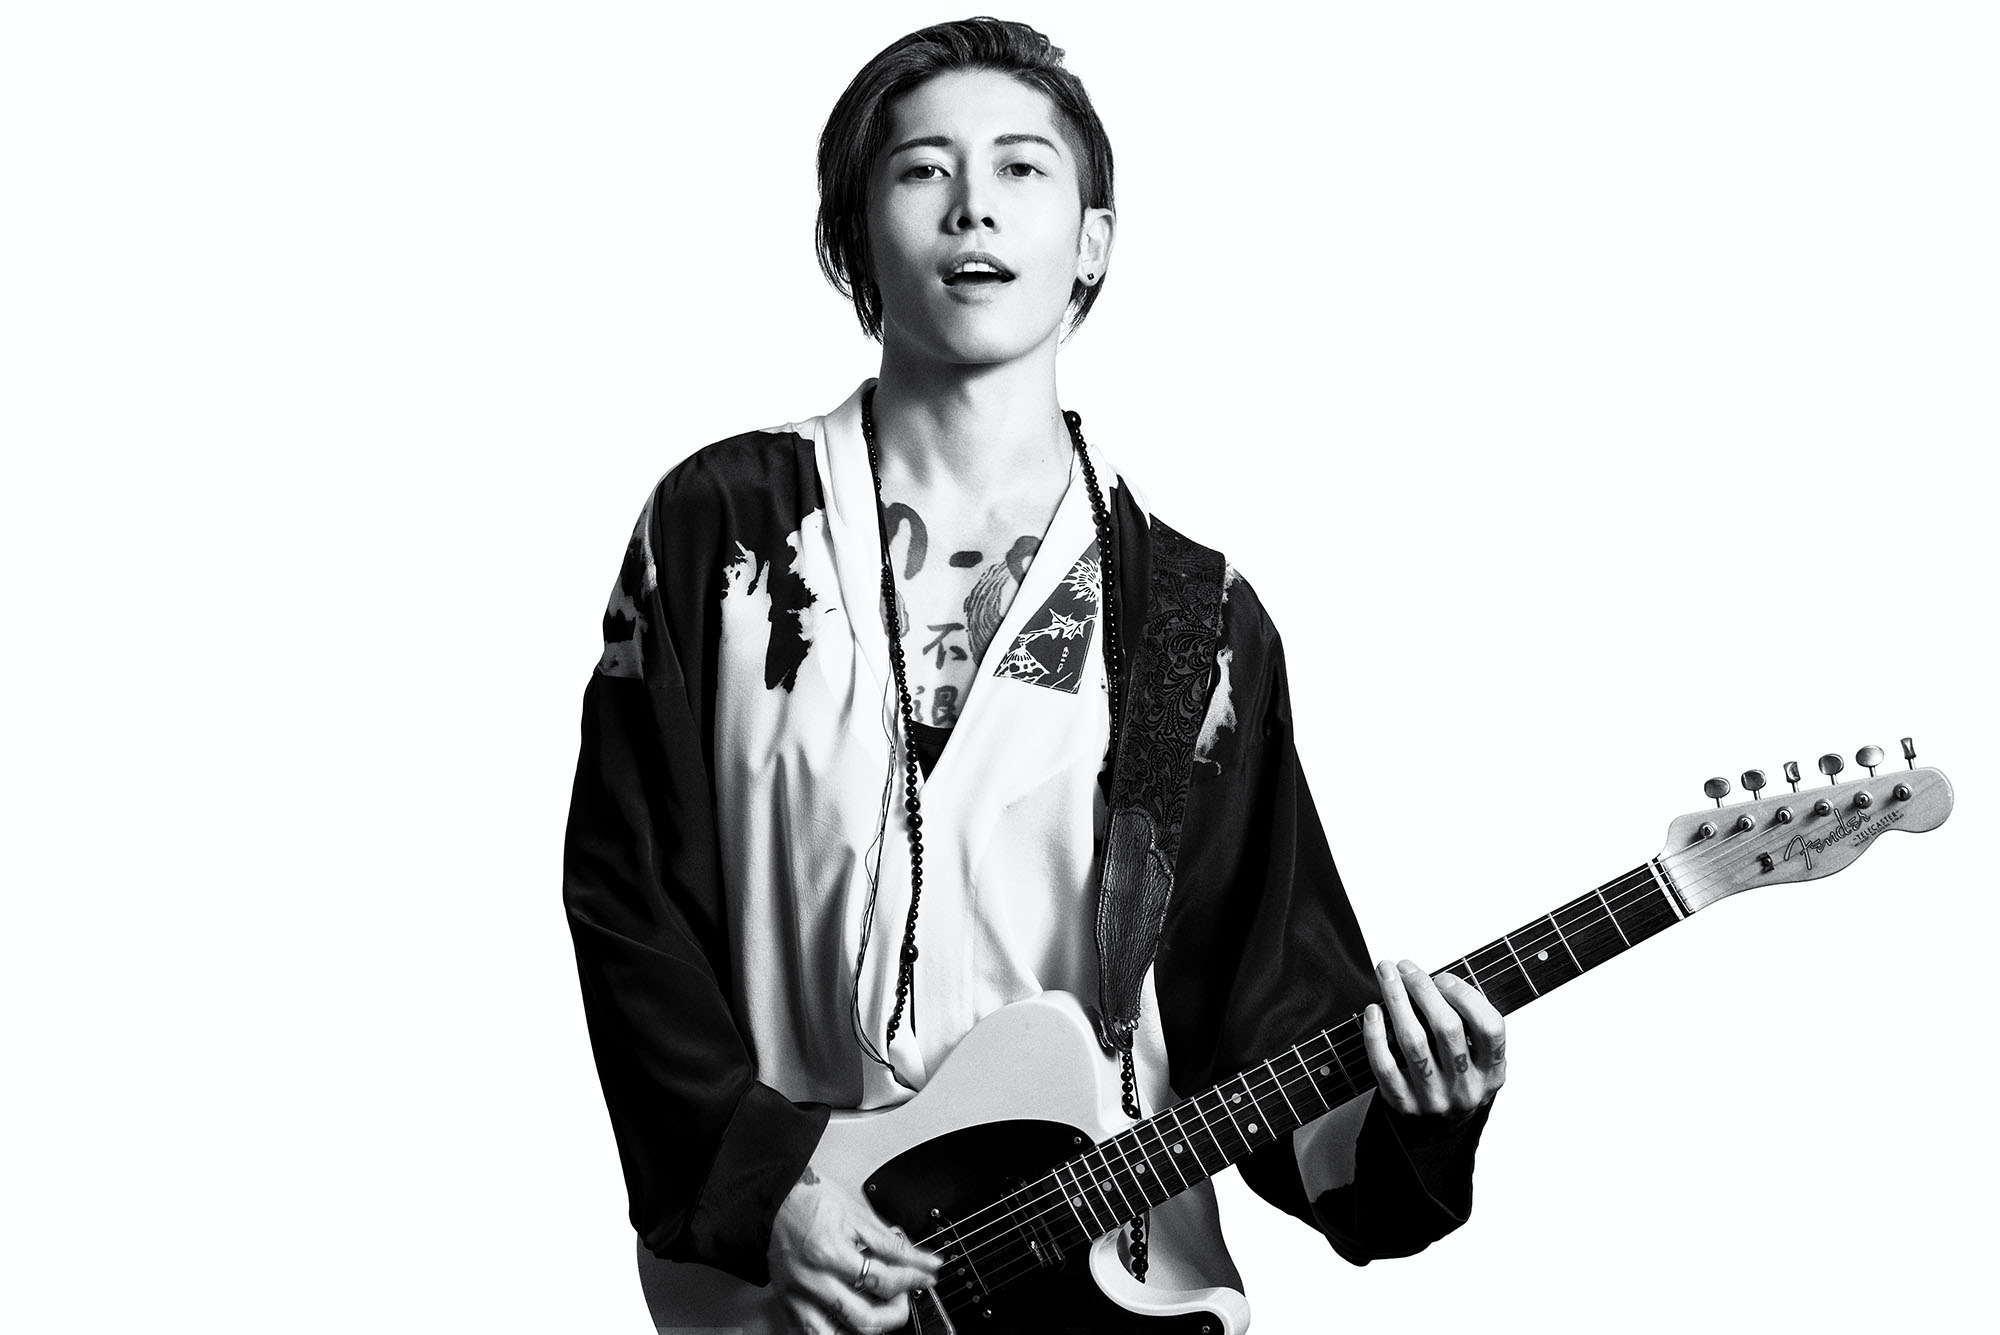 http://static.fashionpost.jp/article/wp-content/uploads/2017/04/05231253/miyavi-insert-0405-2.jpg